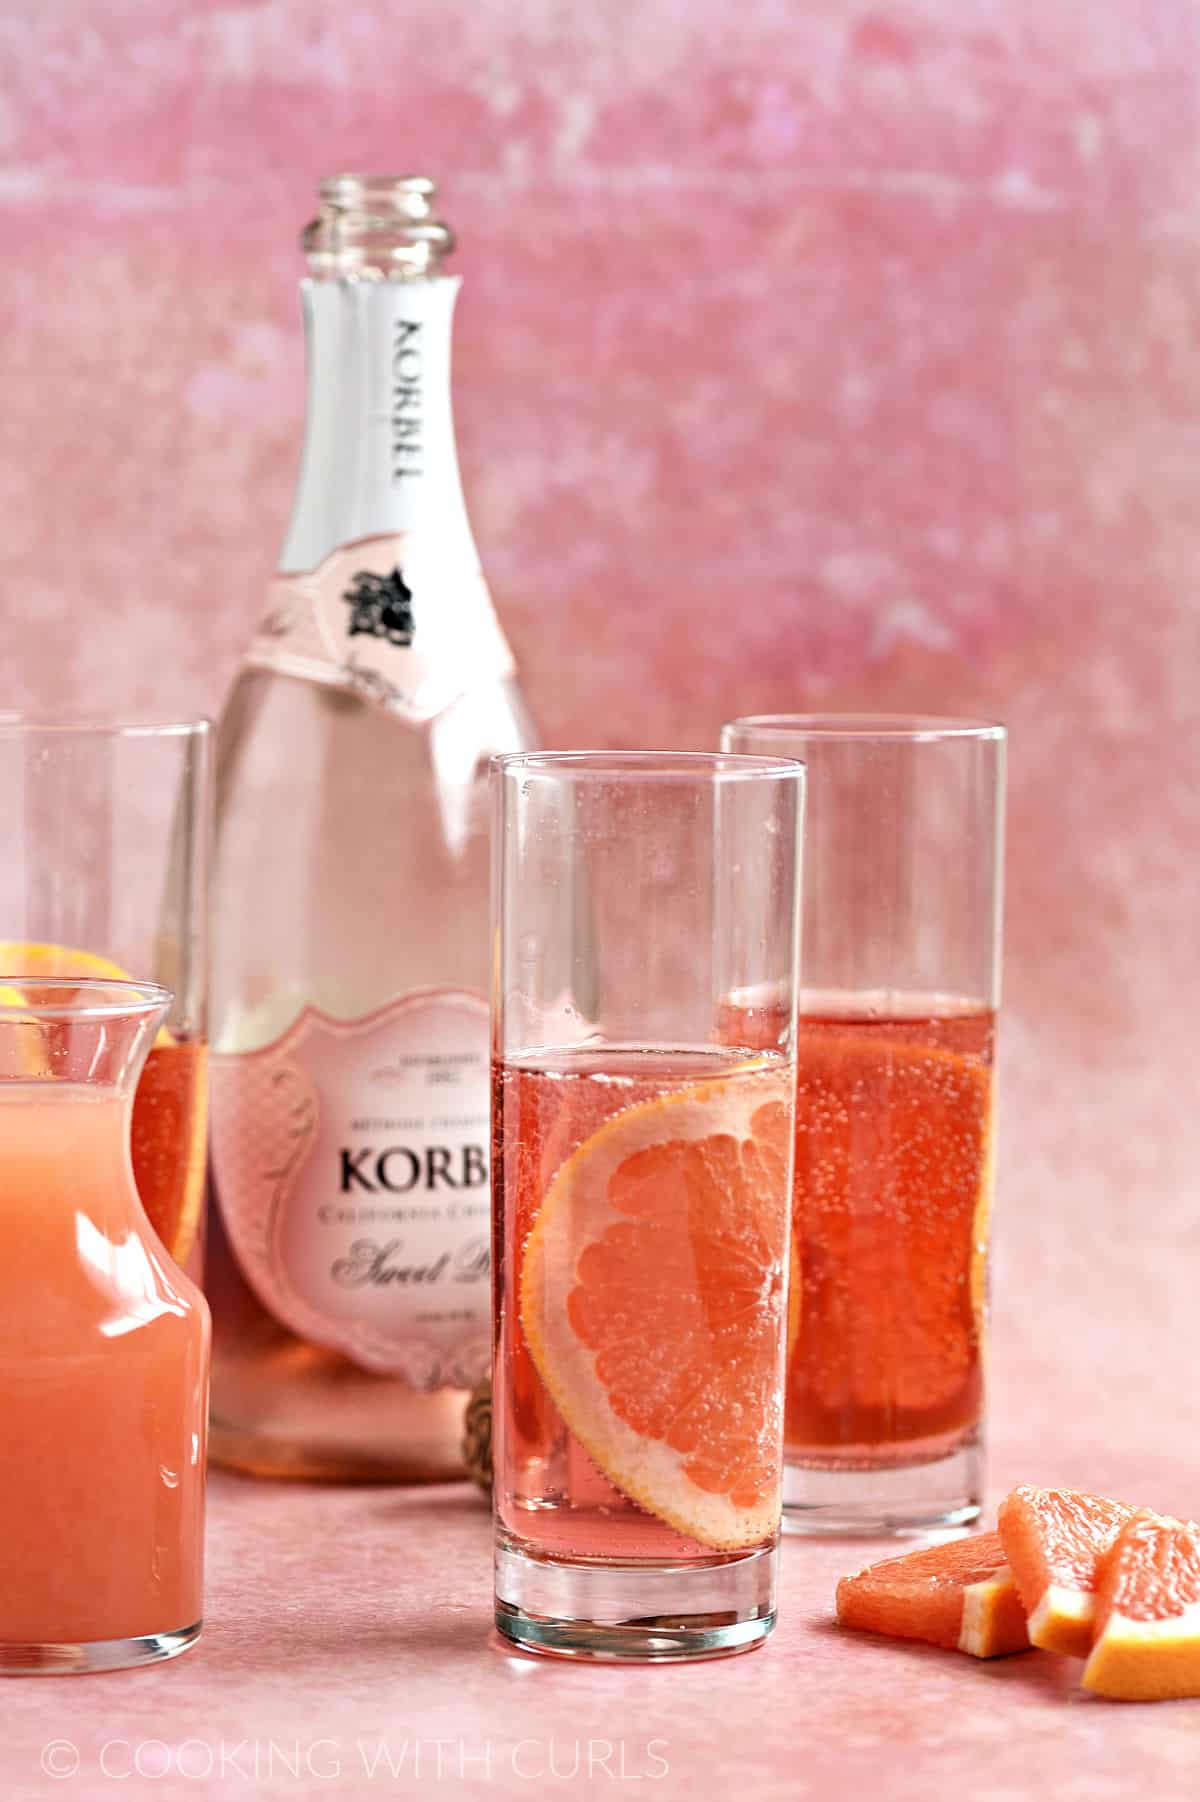 Three skinny glasses filled with rose champagne and a grapefruit slice with a bottle of champagne and carafe of grapefruit juice in the background.